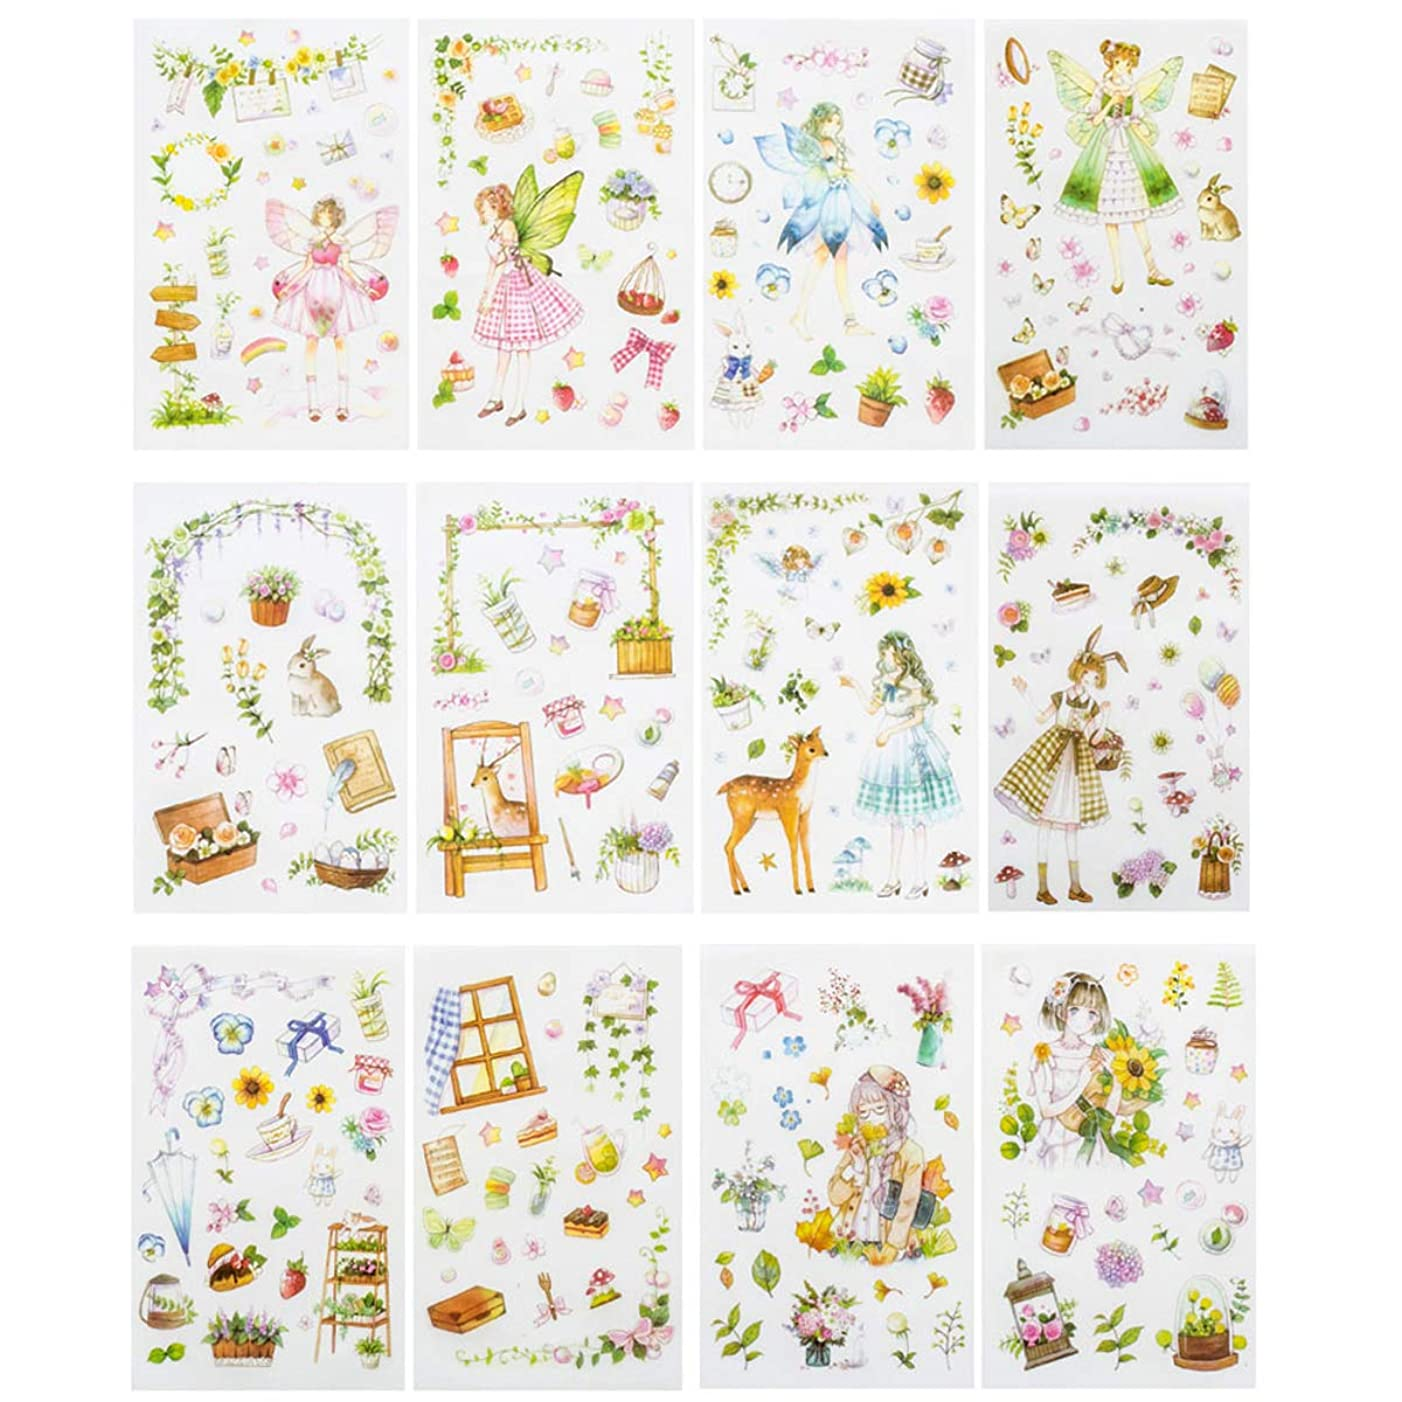 Kawaii Gardening Fairy Girl Floral Sticker Set Cute Animal Rabbit Deer Stationery Stickers Diary Book DIY Craft Arts Scrapbooking Travel Journal Planner Decorative Label Office Supplies for Kids